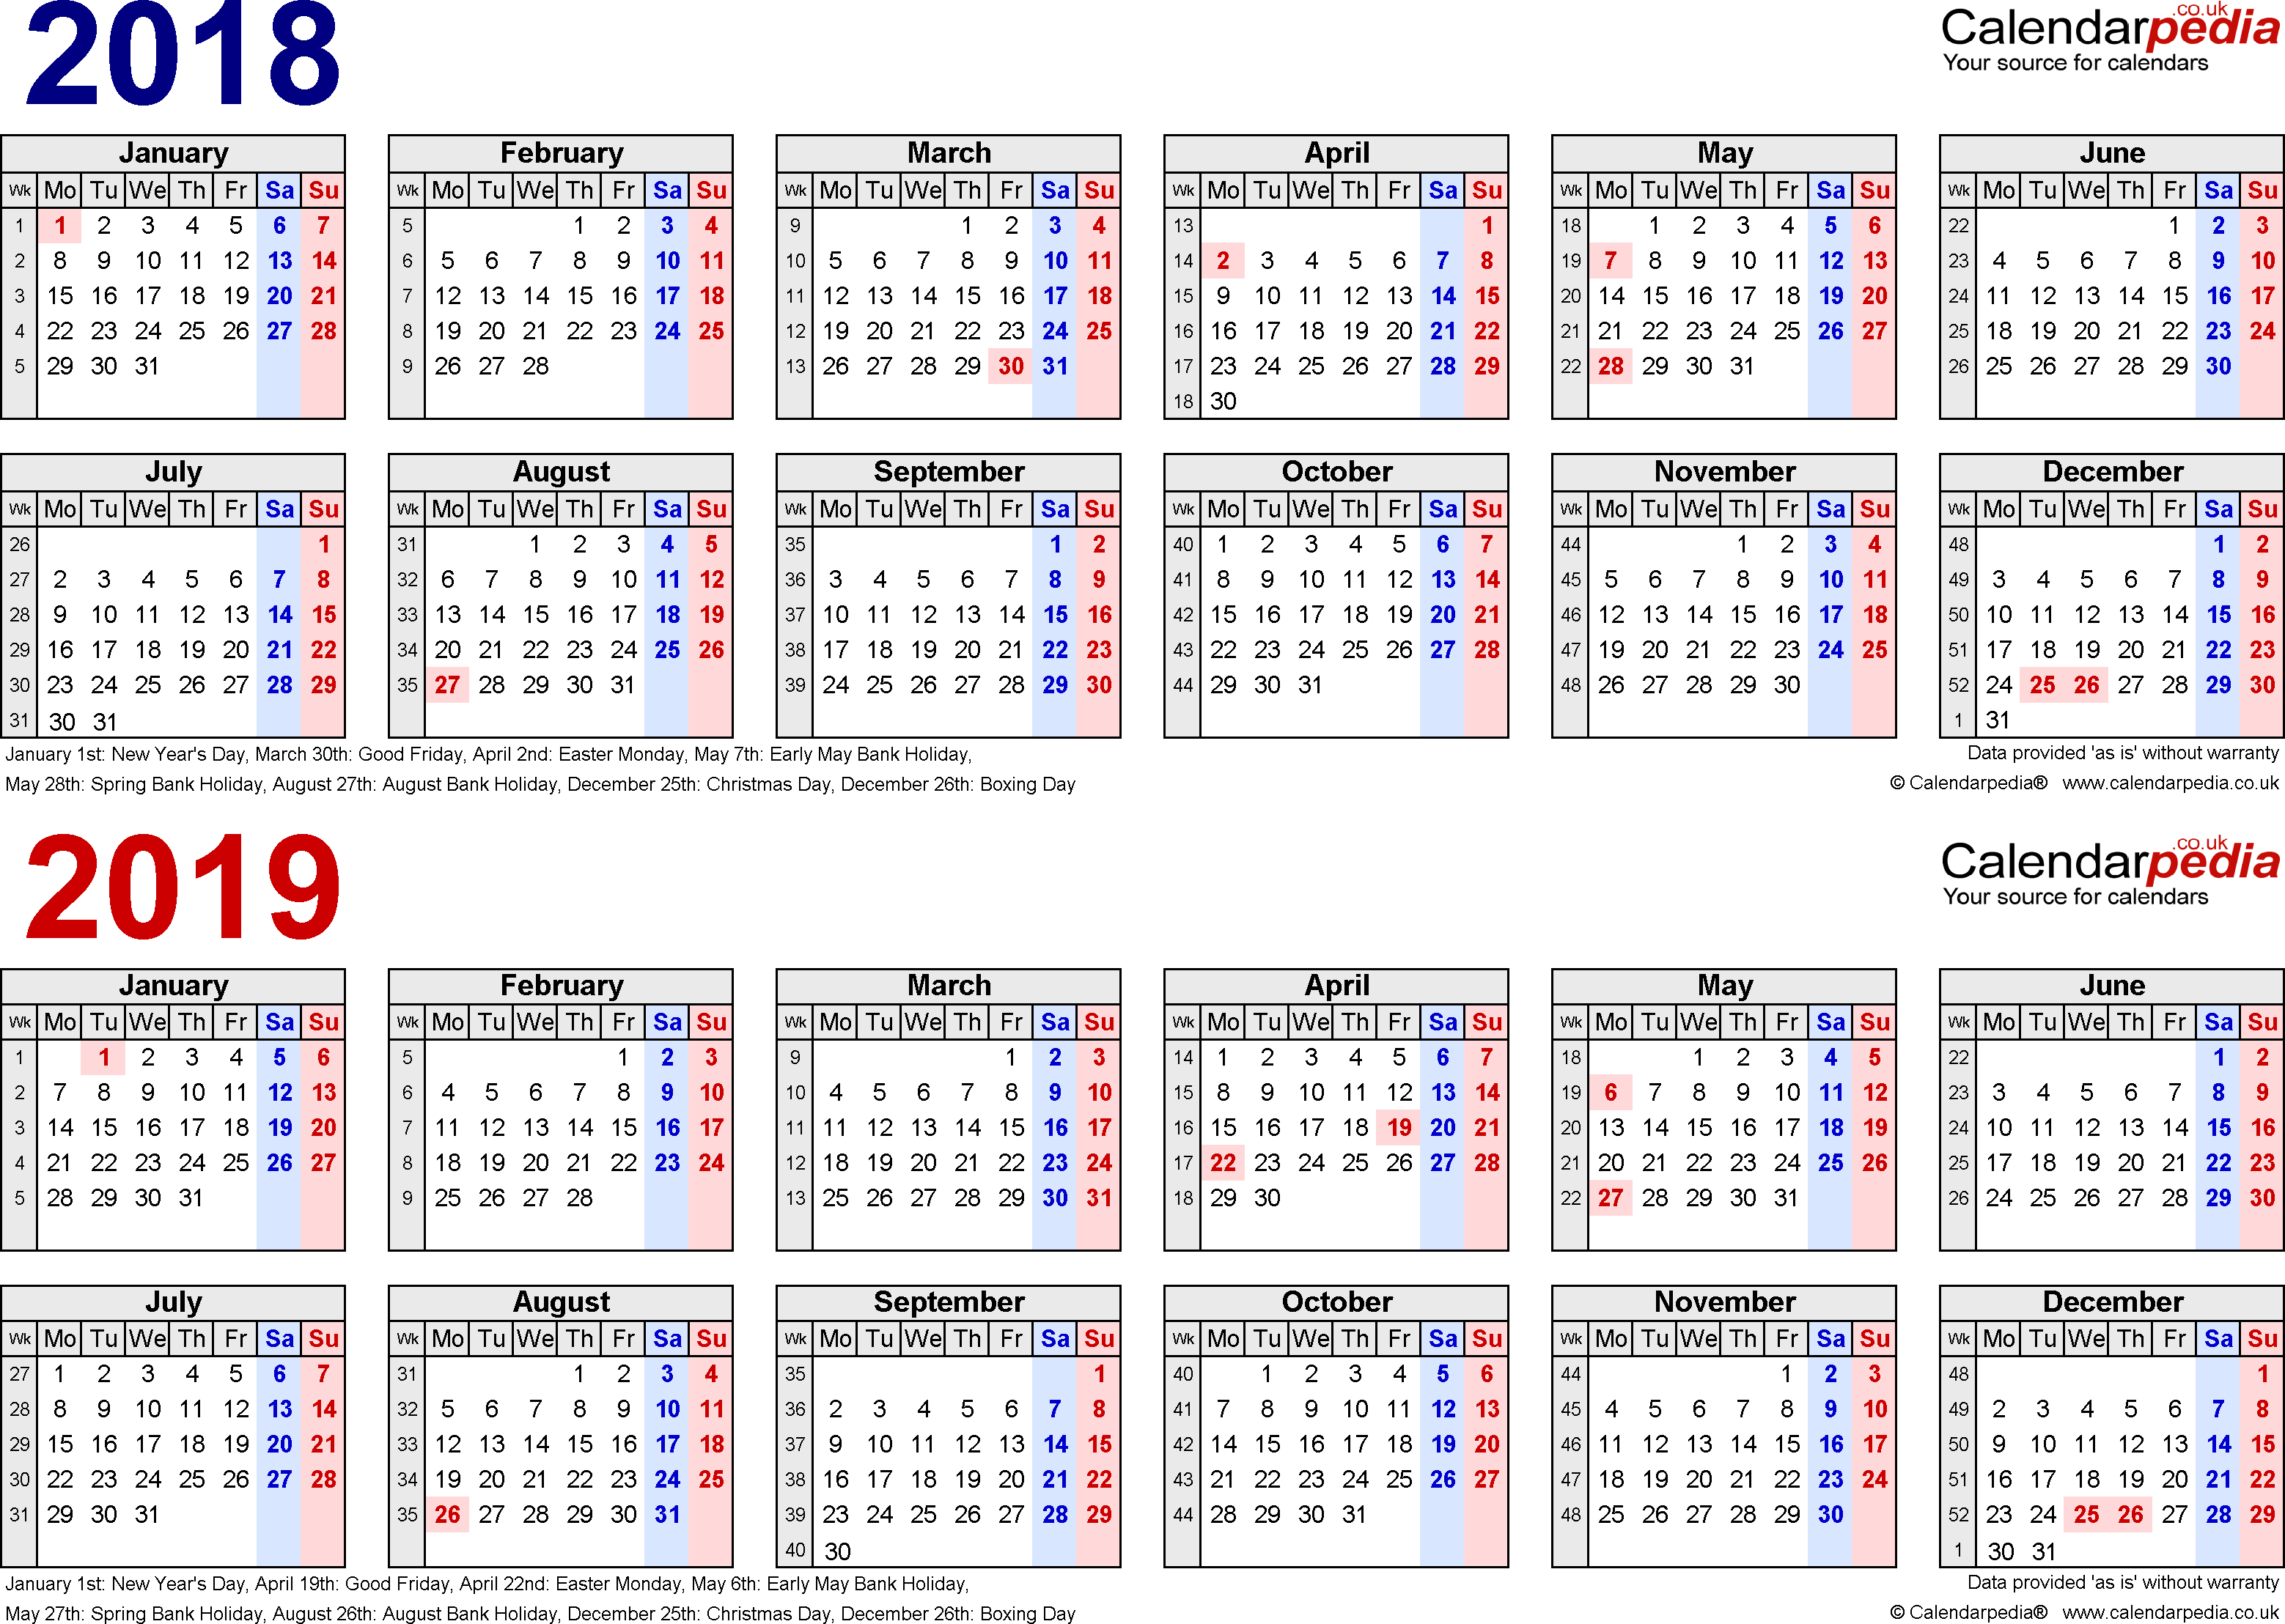 Two Year Calendars For 2018 U0026 2019 (UK) For Excel